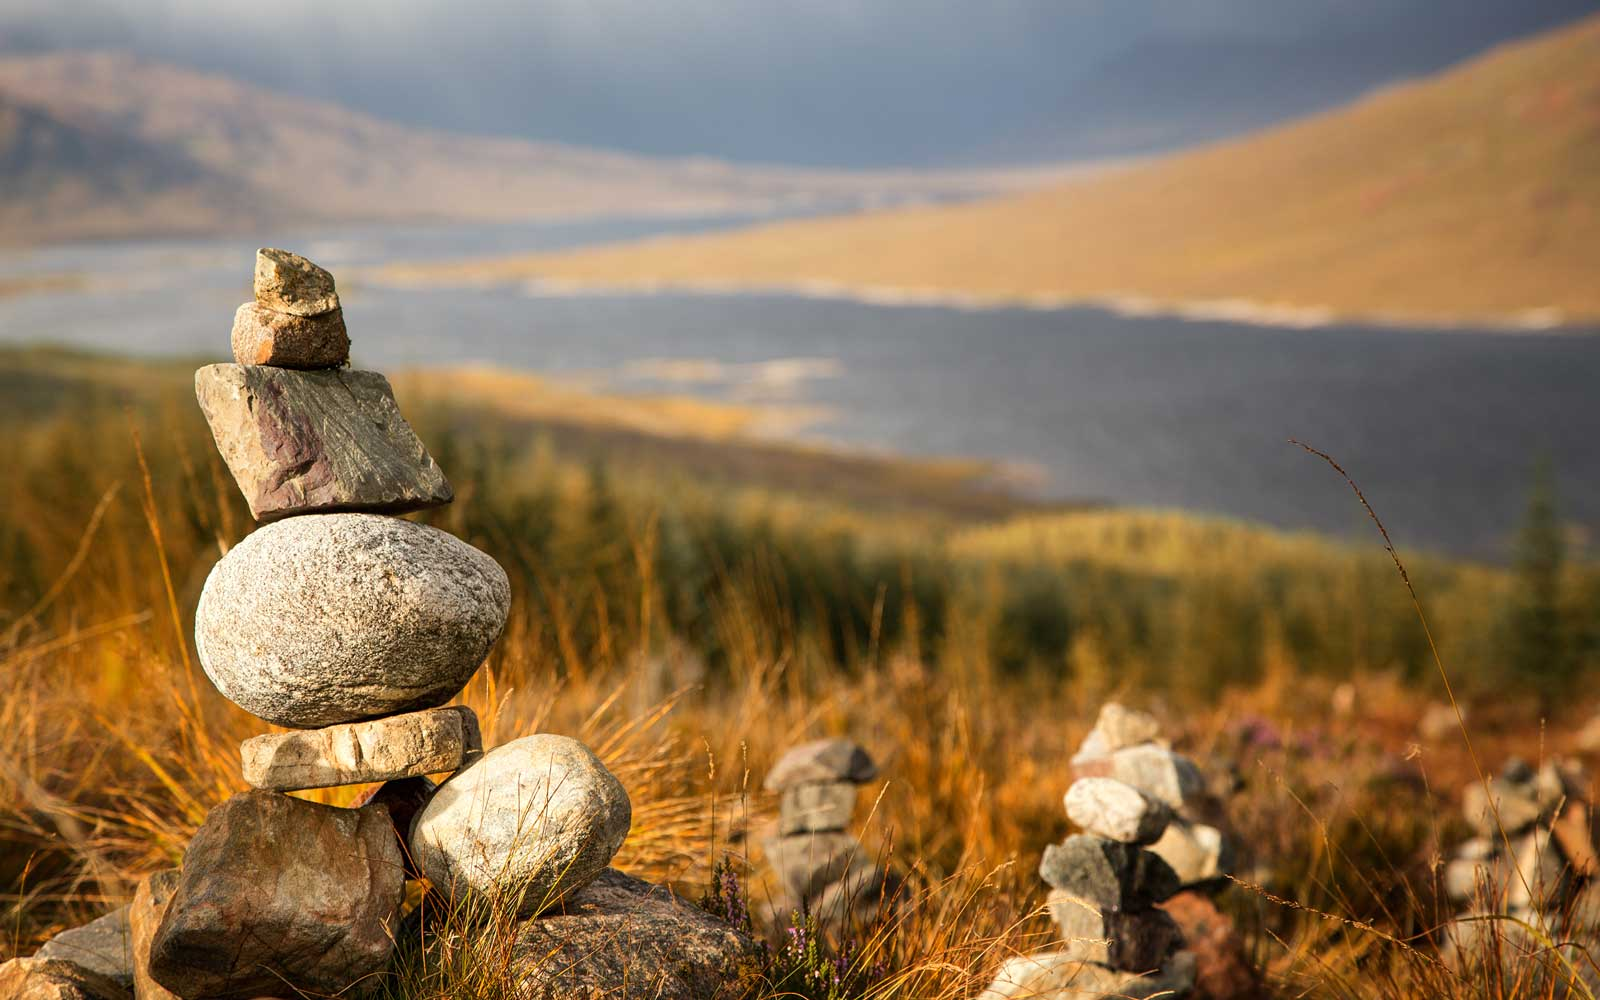 Stone stacks in the Scottish Highlands, overlooking the Ardochy Forest towards Loch Garry, Scotland, UK